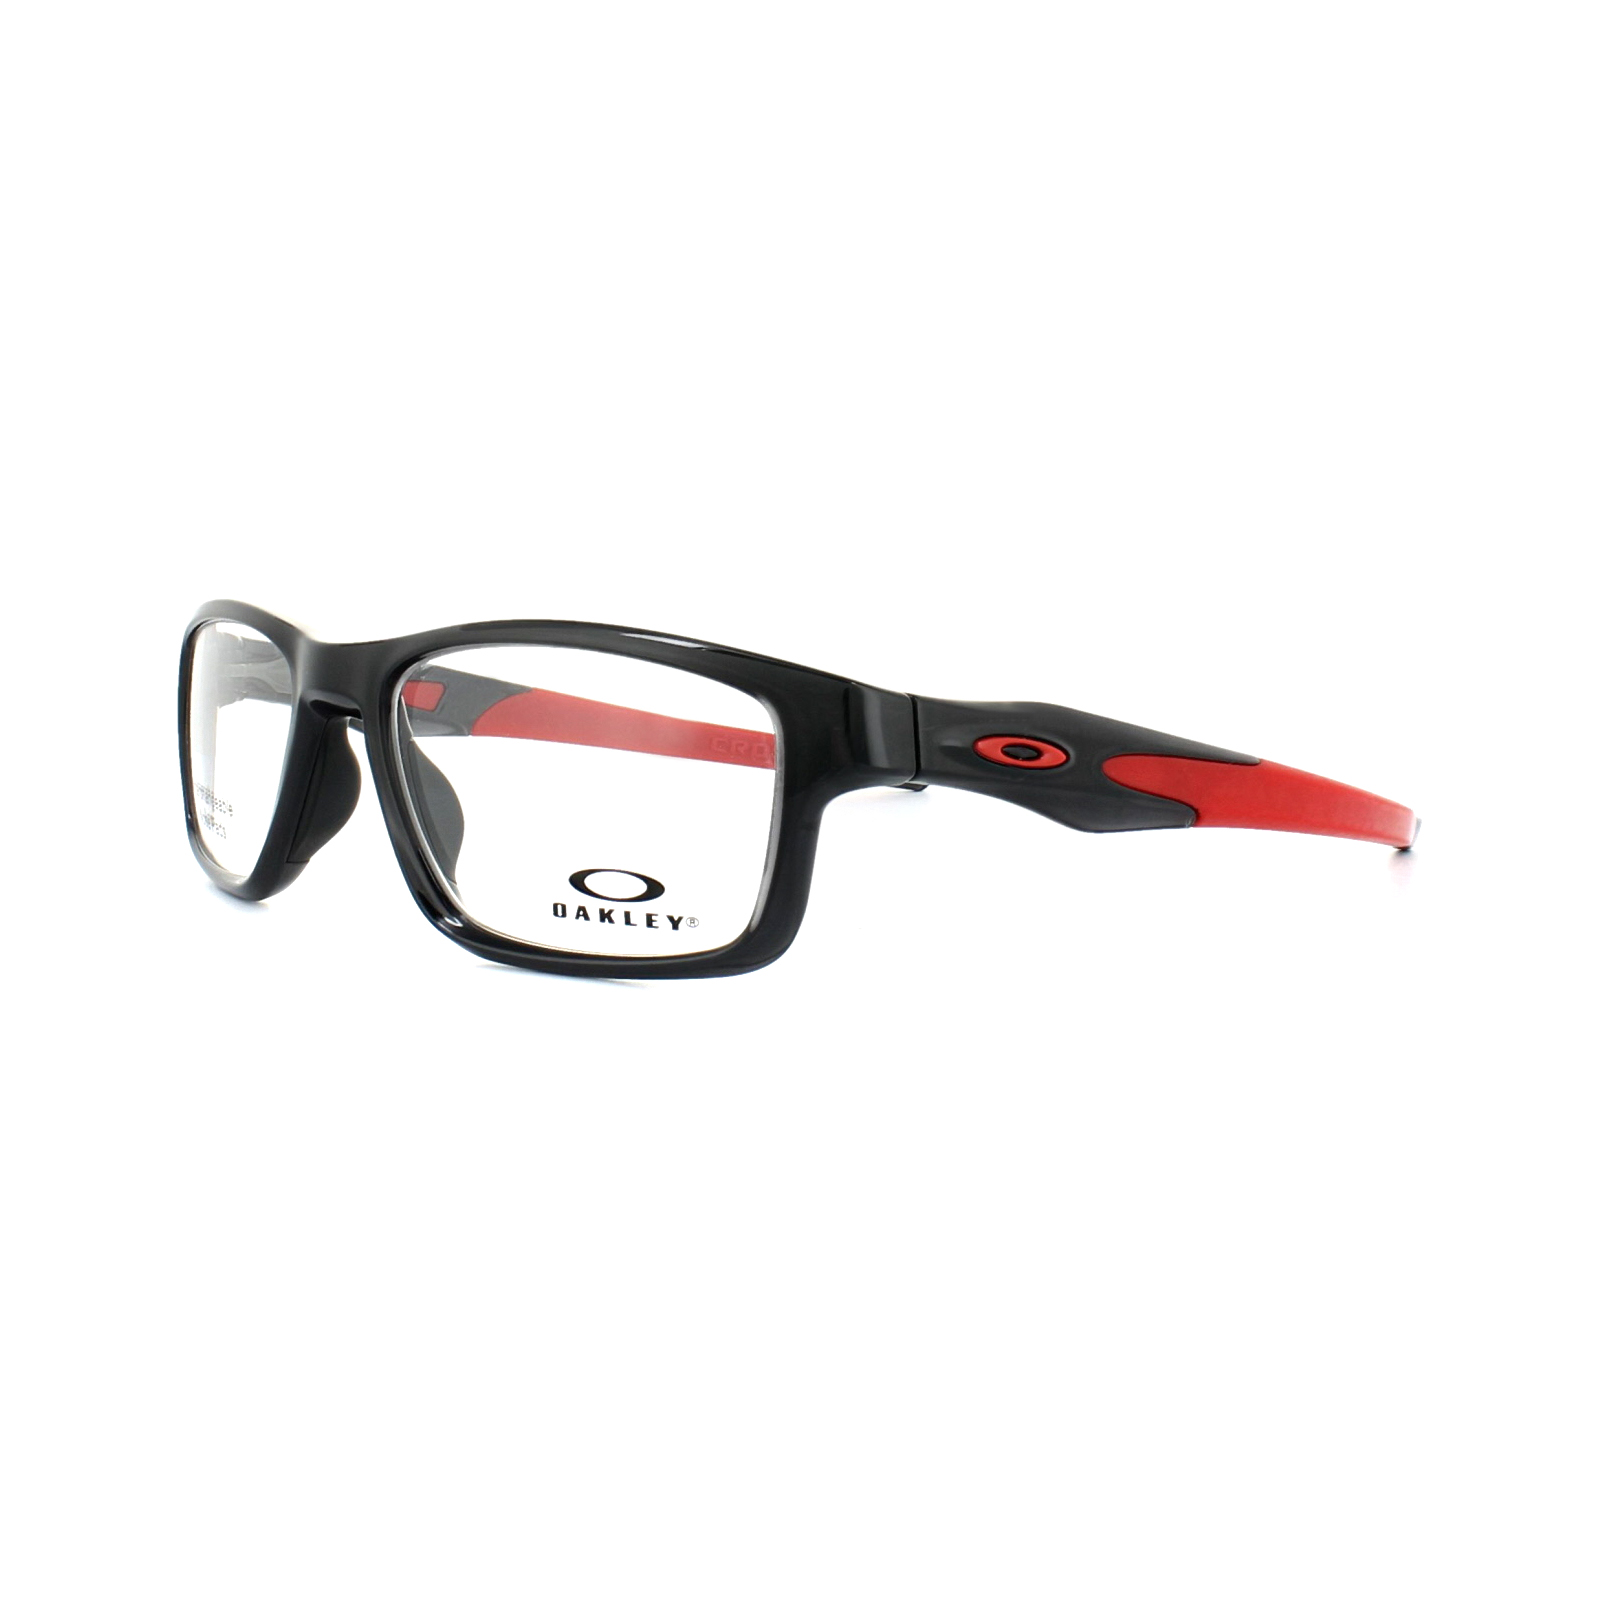 a2909f05622 Sentinel Oakley Glasses Frames Crosslink Trubridge OX8090-03 Polished Black  Ink